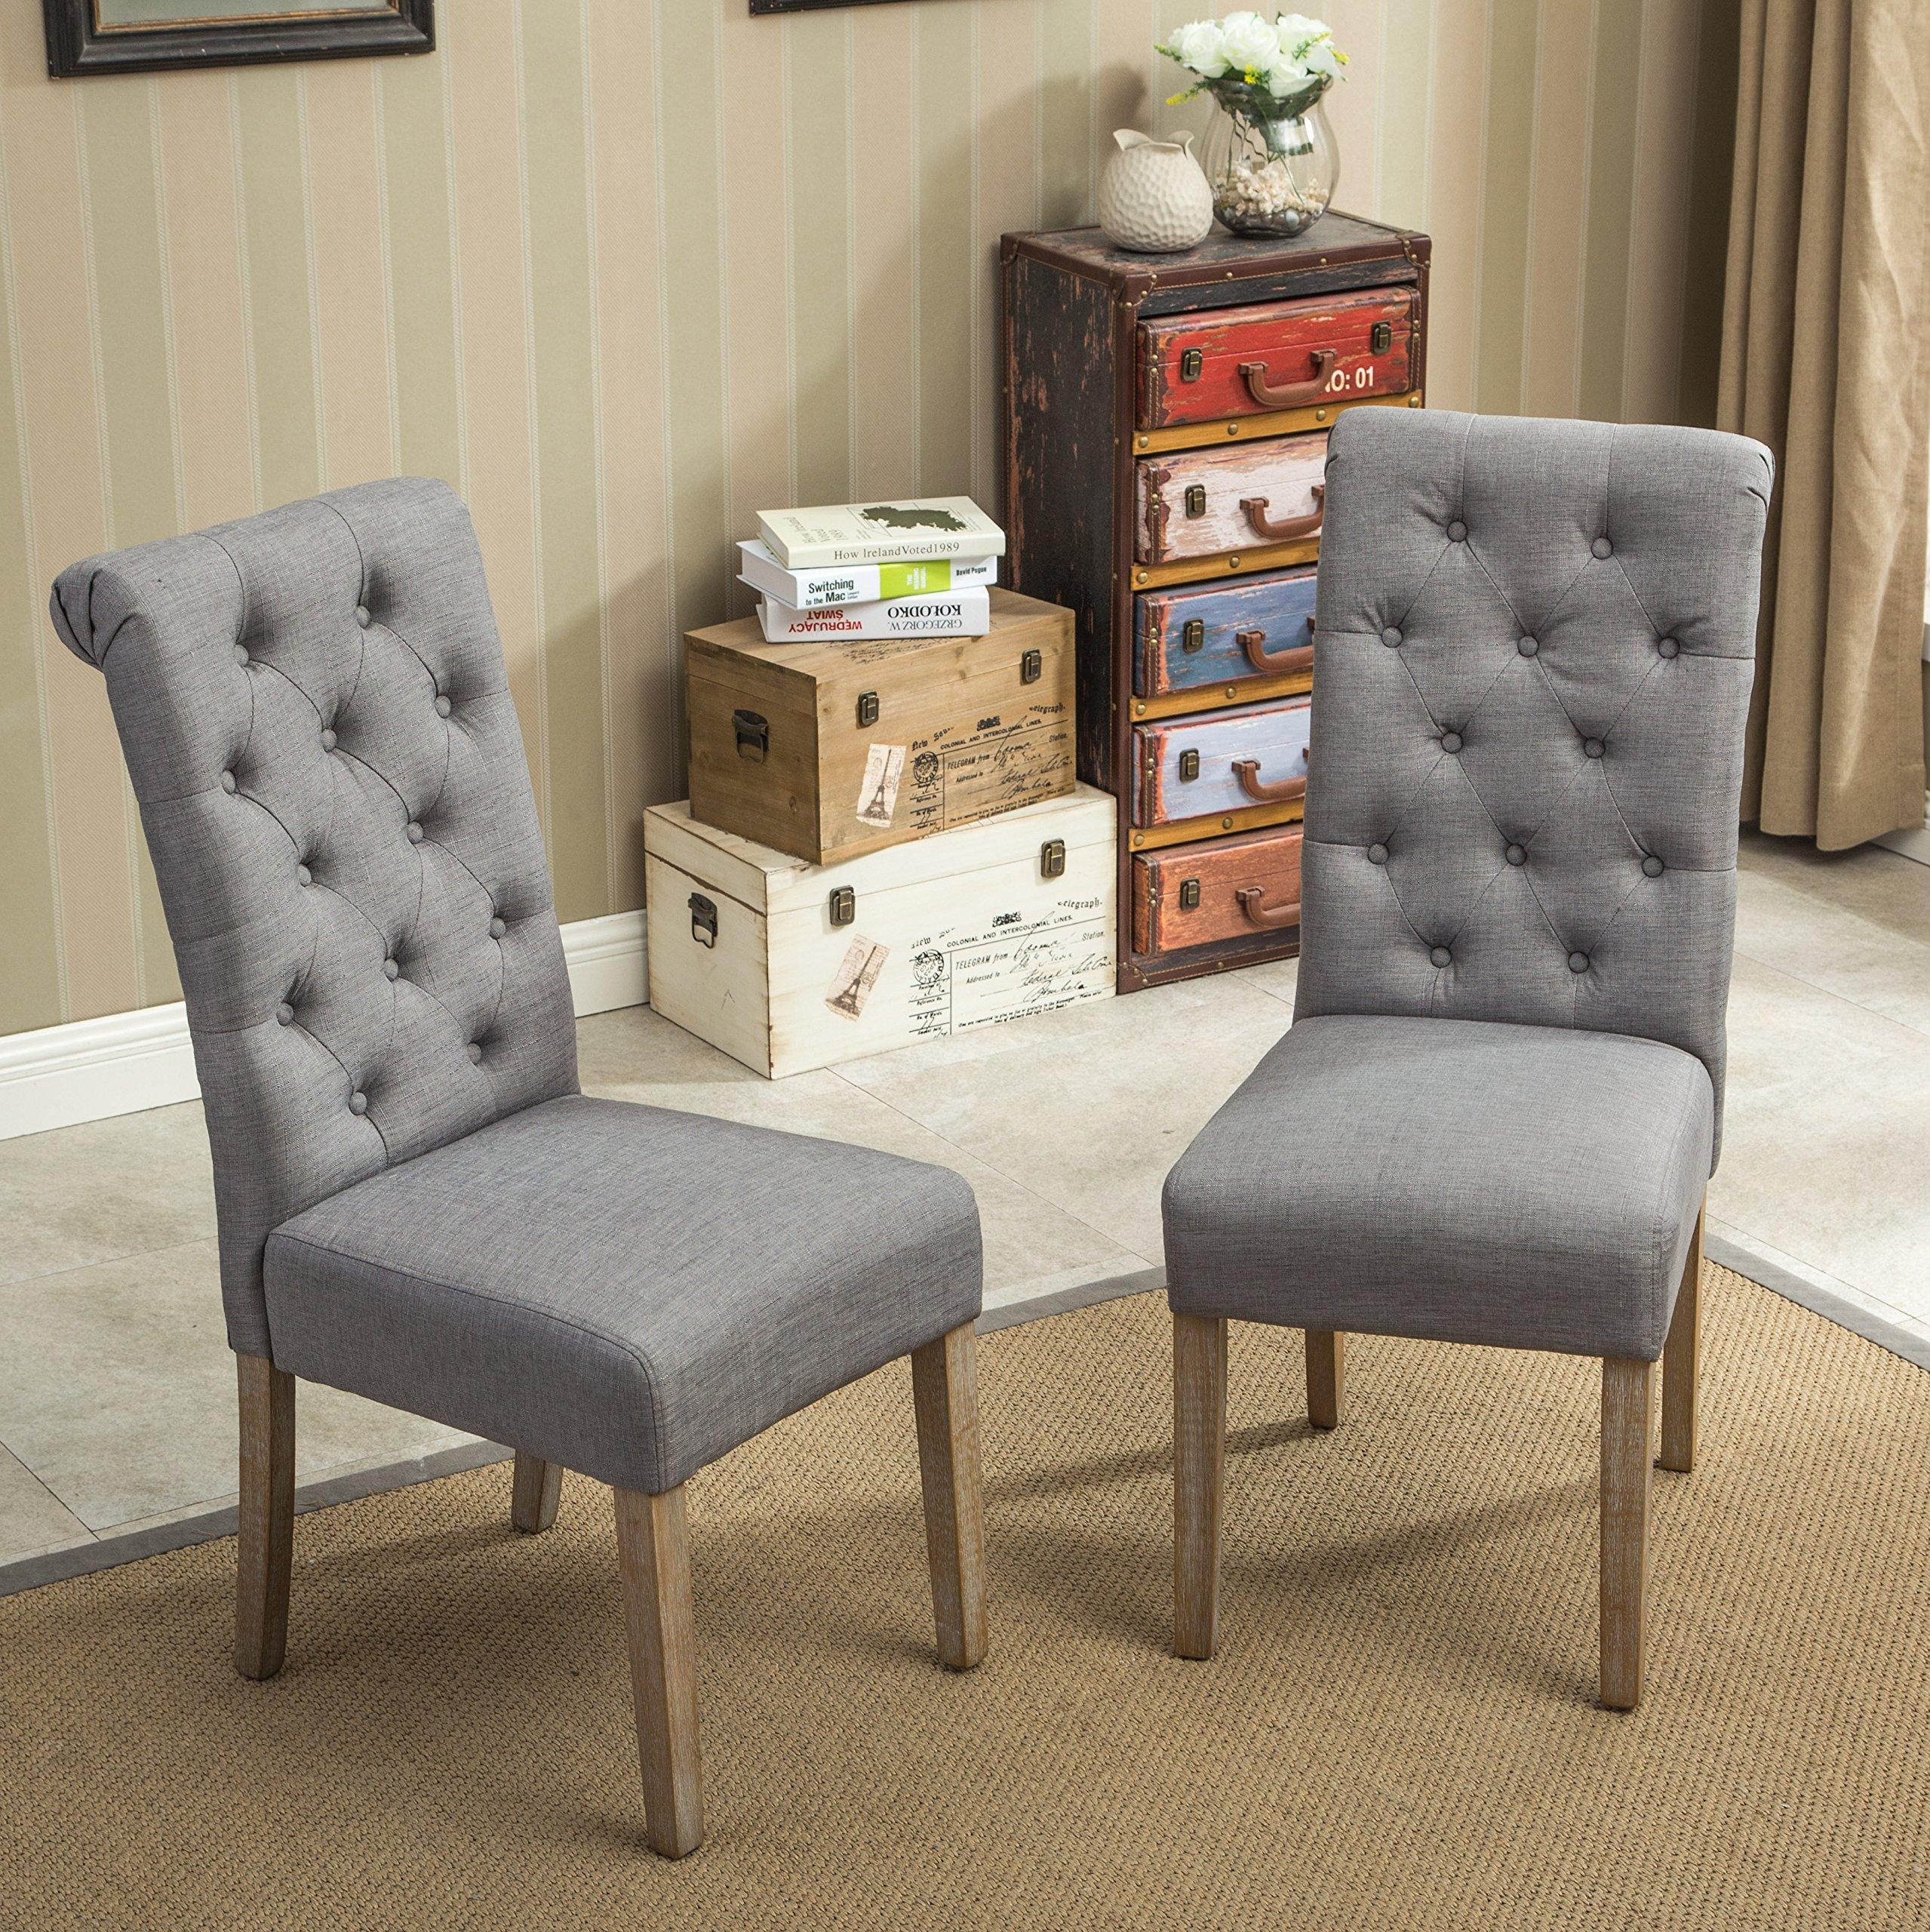 Roundhill Furniture Habit Grey Solid Wood Tufted Parsons Dining Chair (Set of 2), Gray by Roundhill Furniture (Image #3)